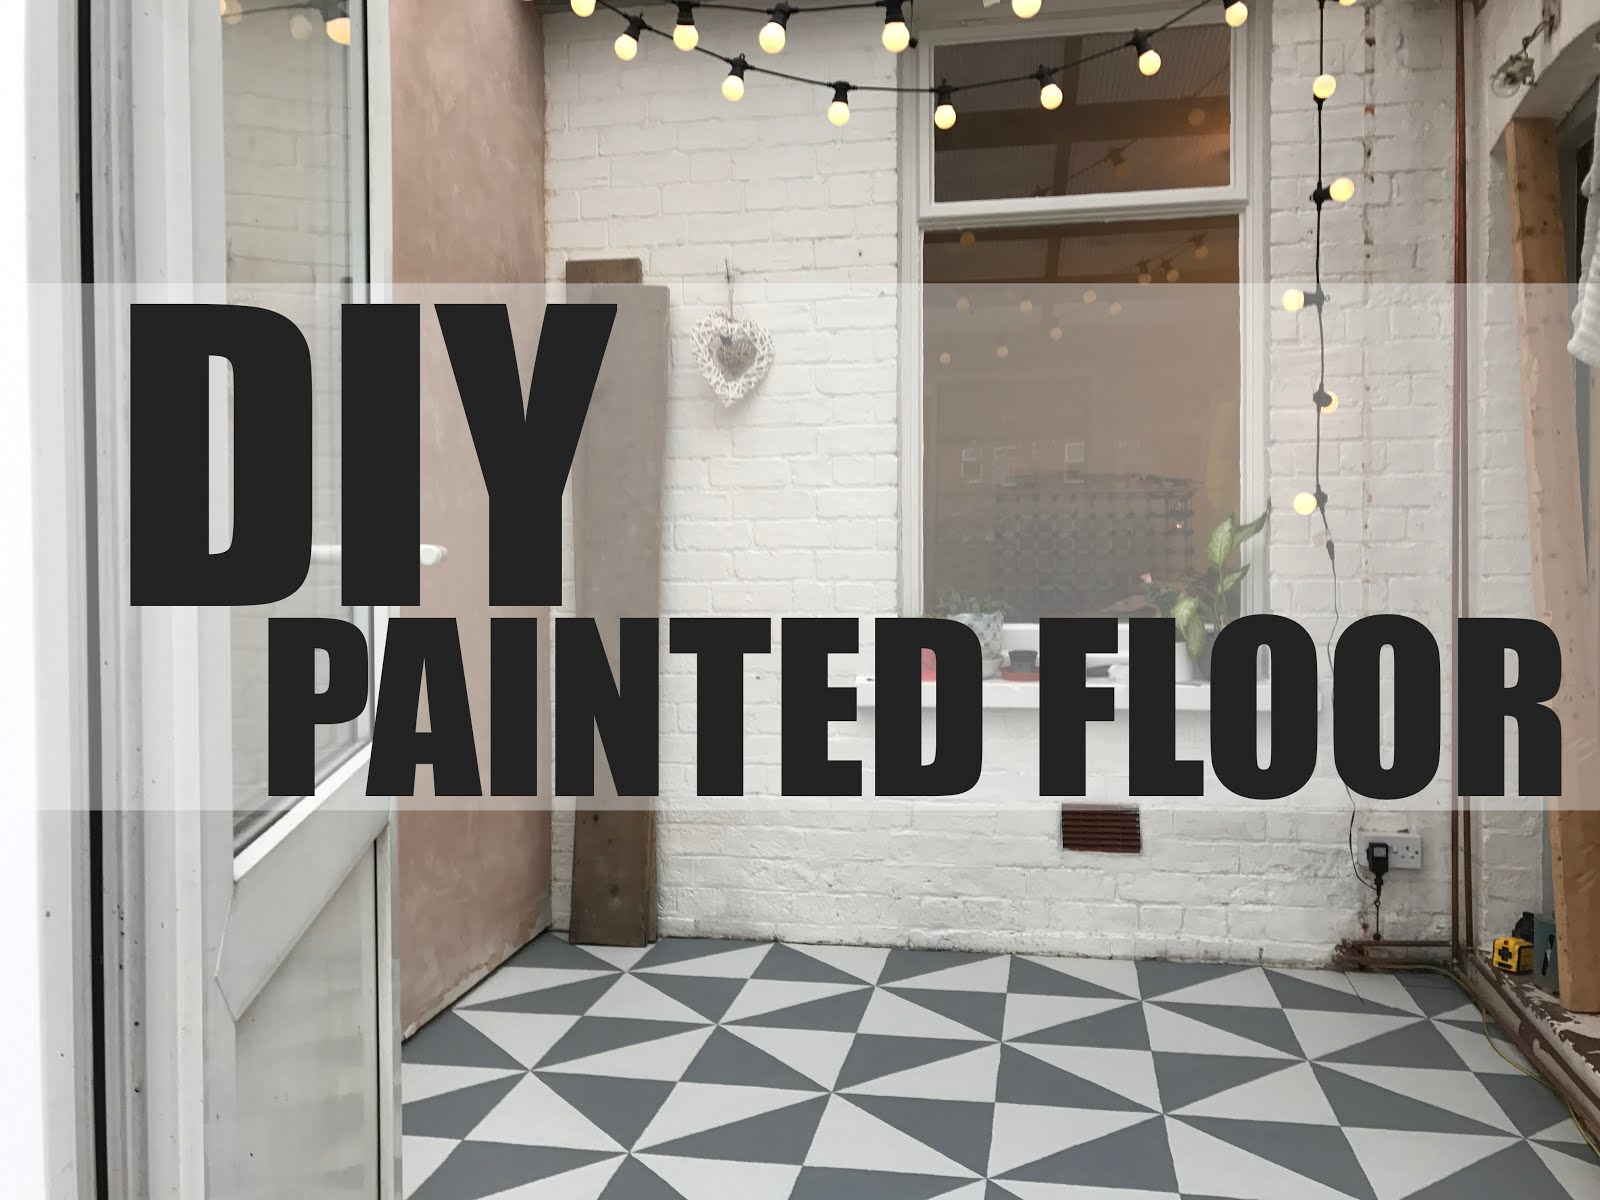 DIY Painting a Patterned Floor